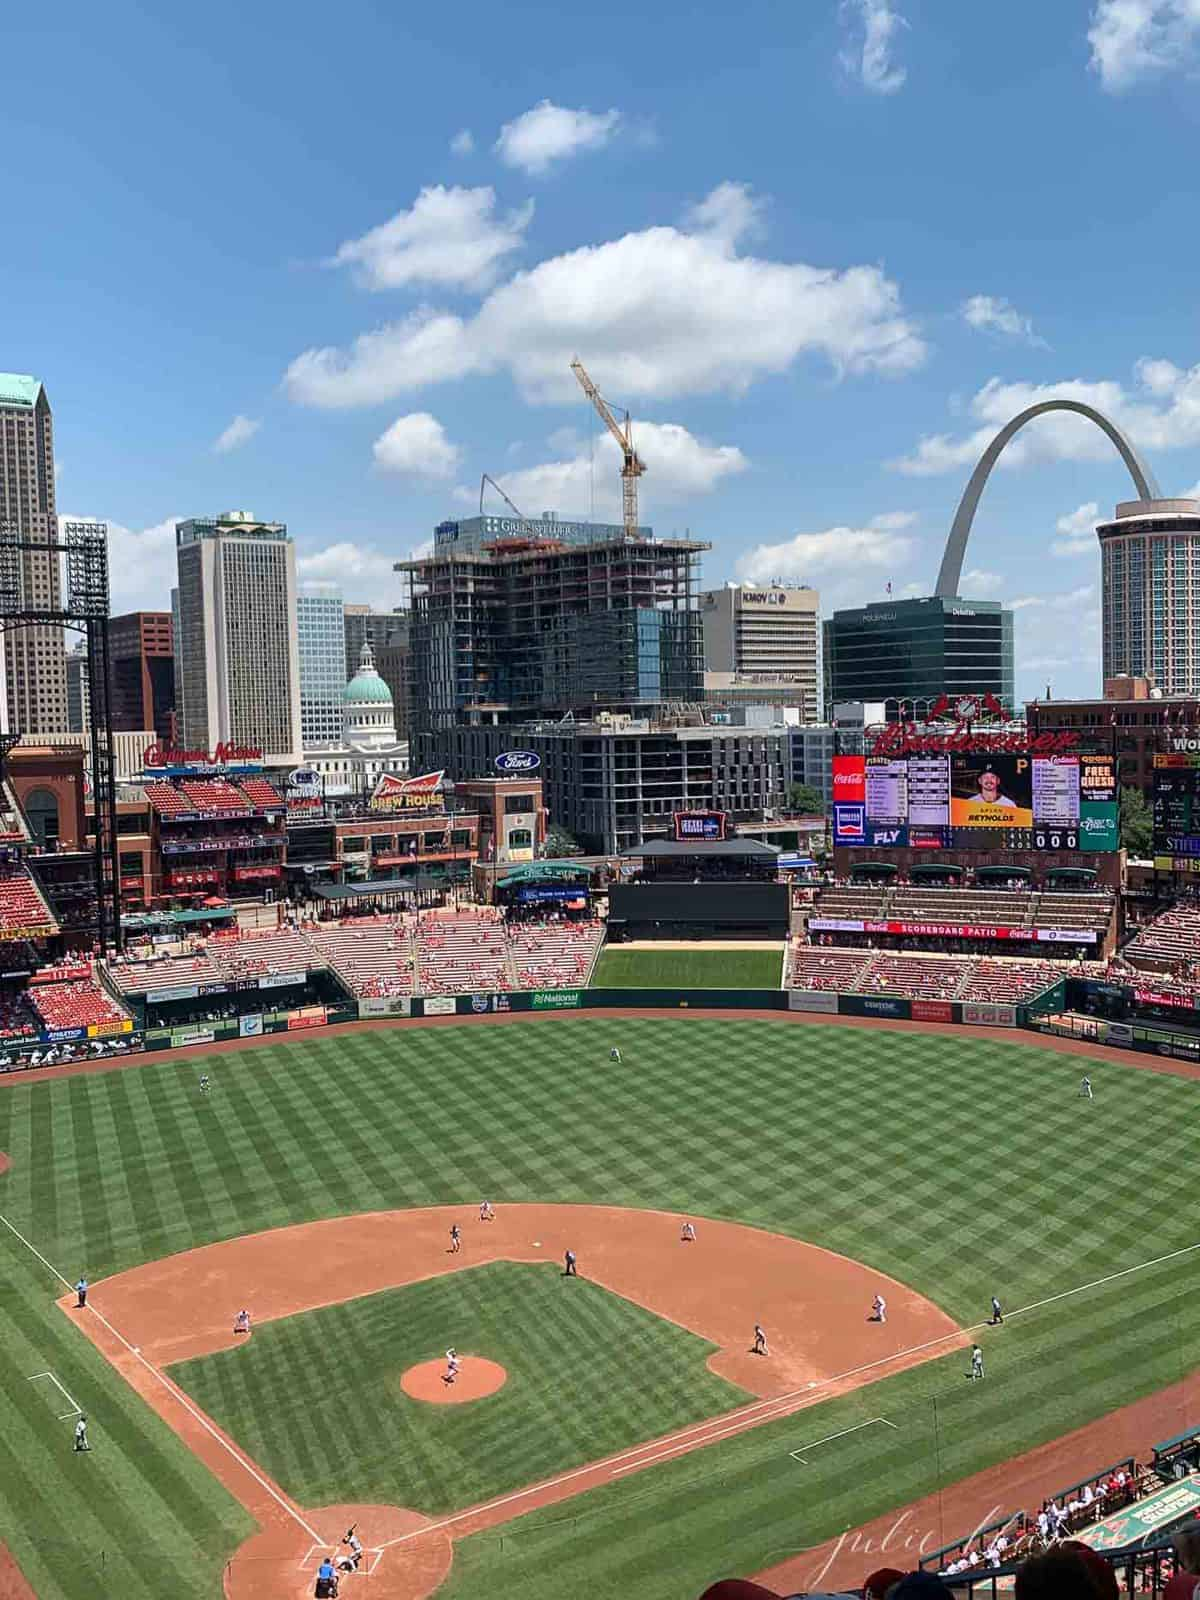 St. Louis baseball field with the arch in the background